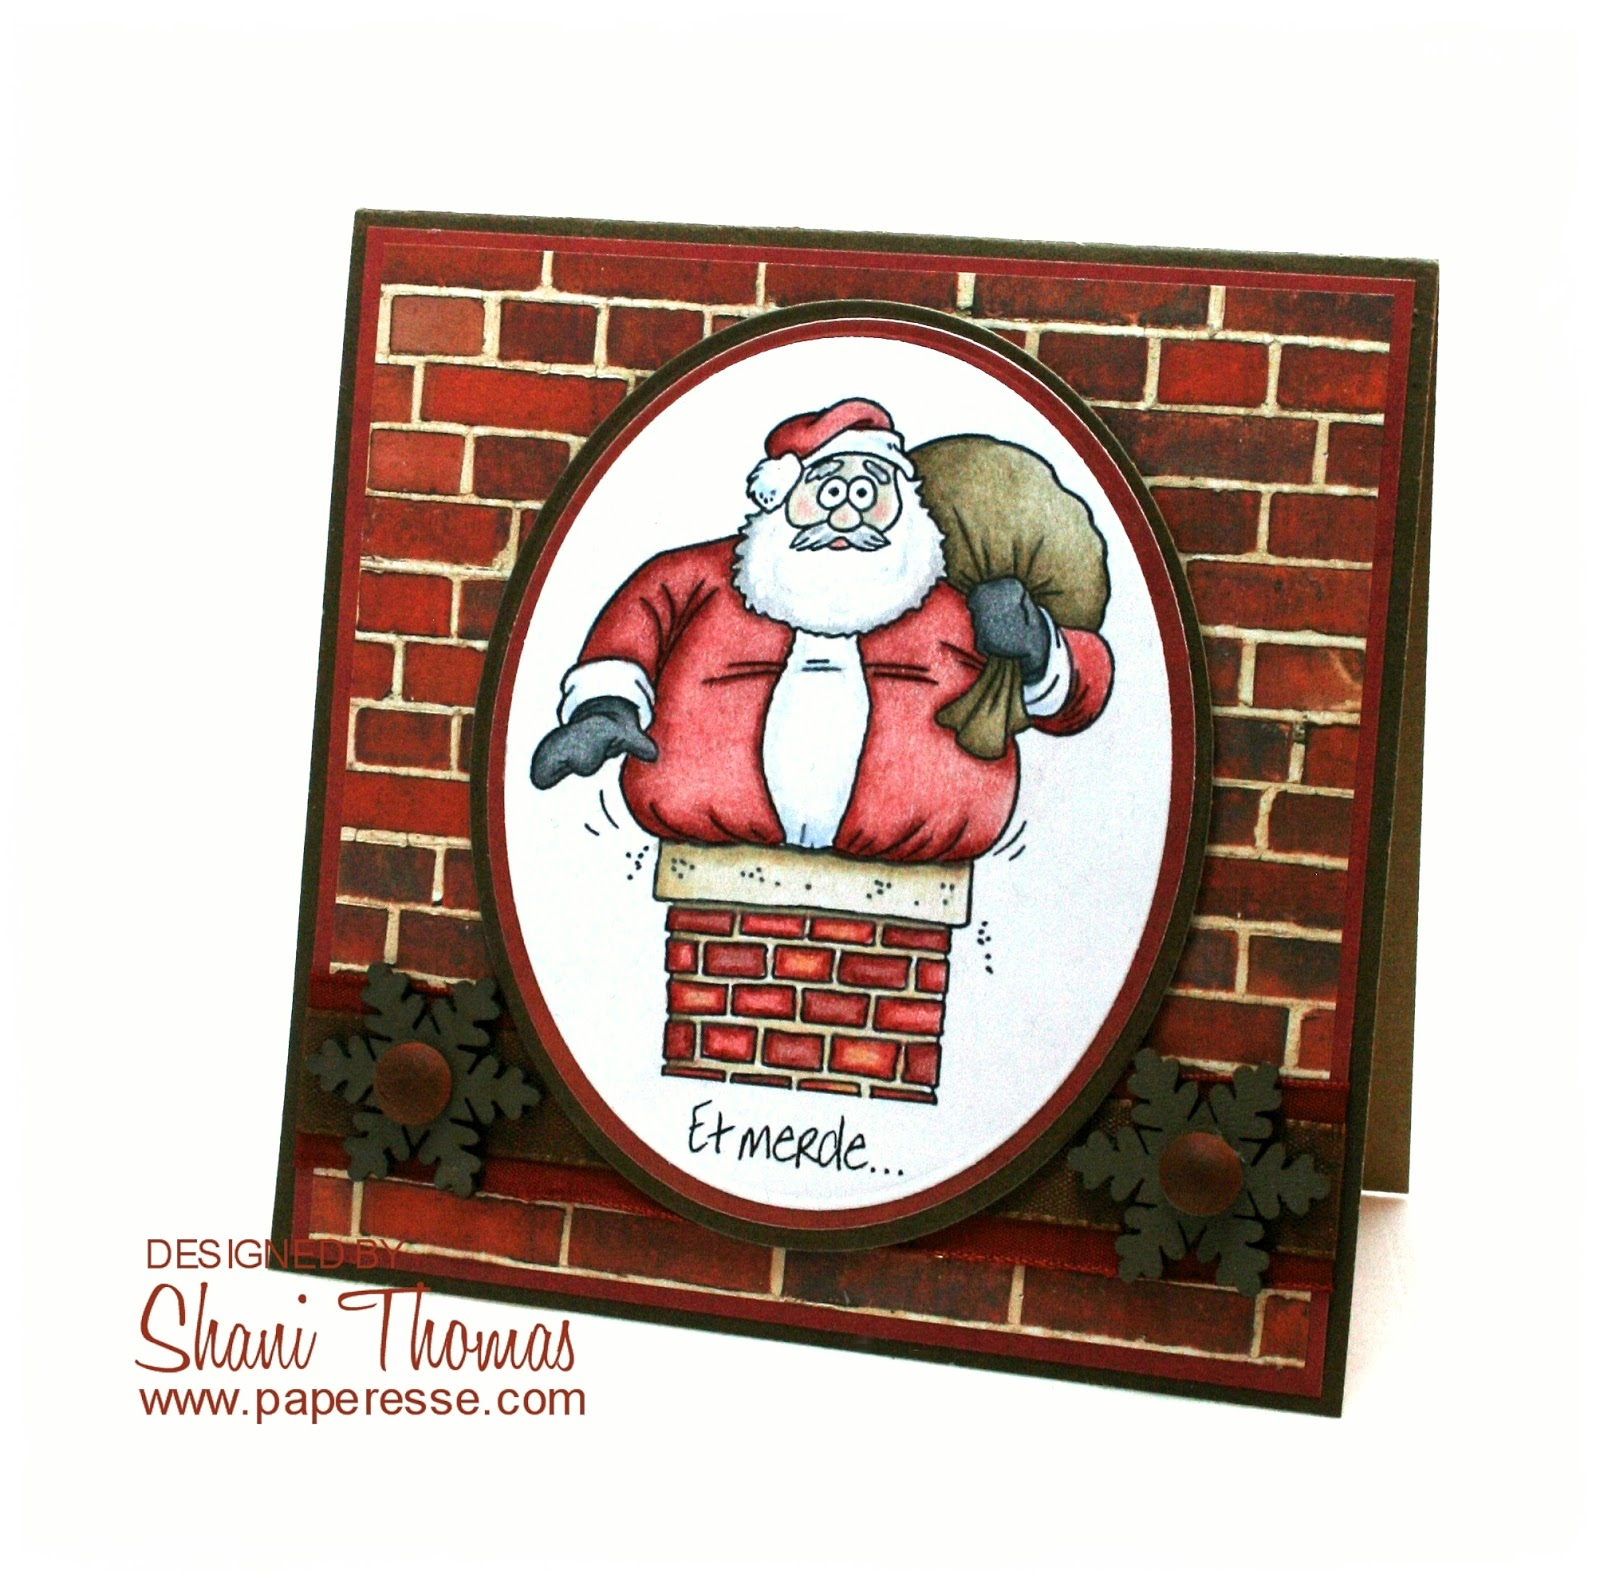 Santa S Stuck Coloring Page With Paperesse Et Merde Funny In A Chimney Christmas Card